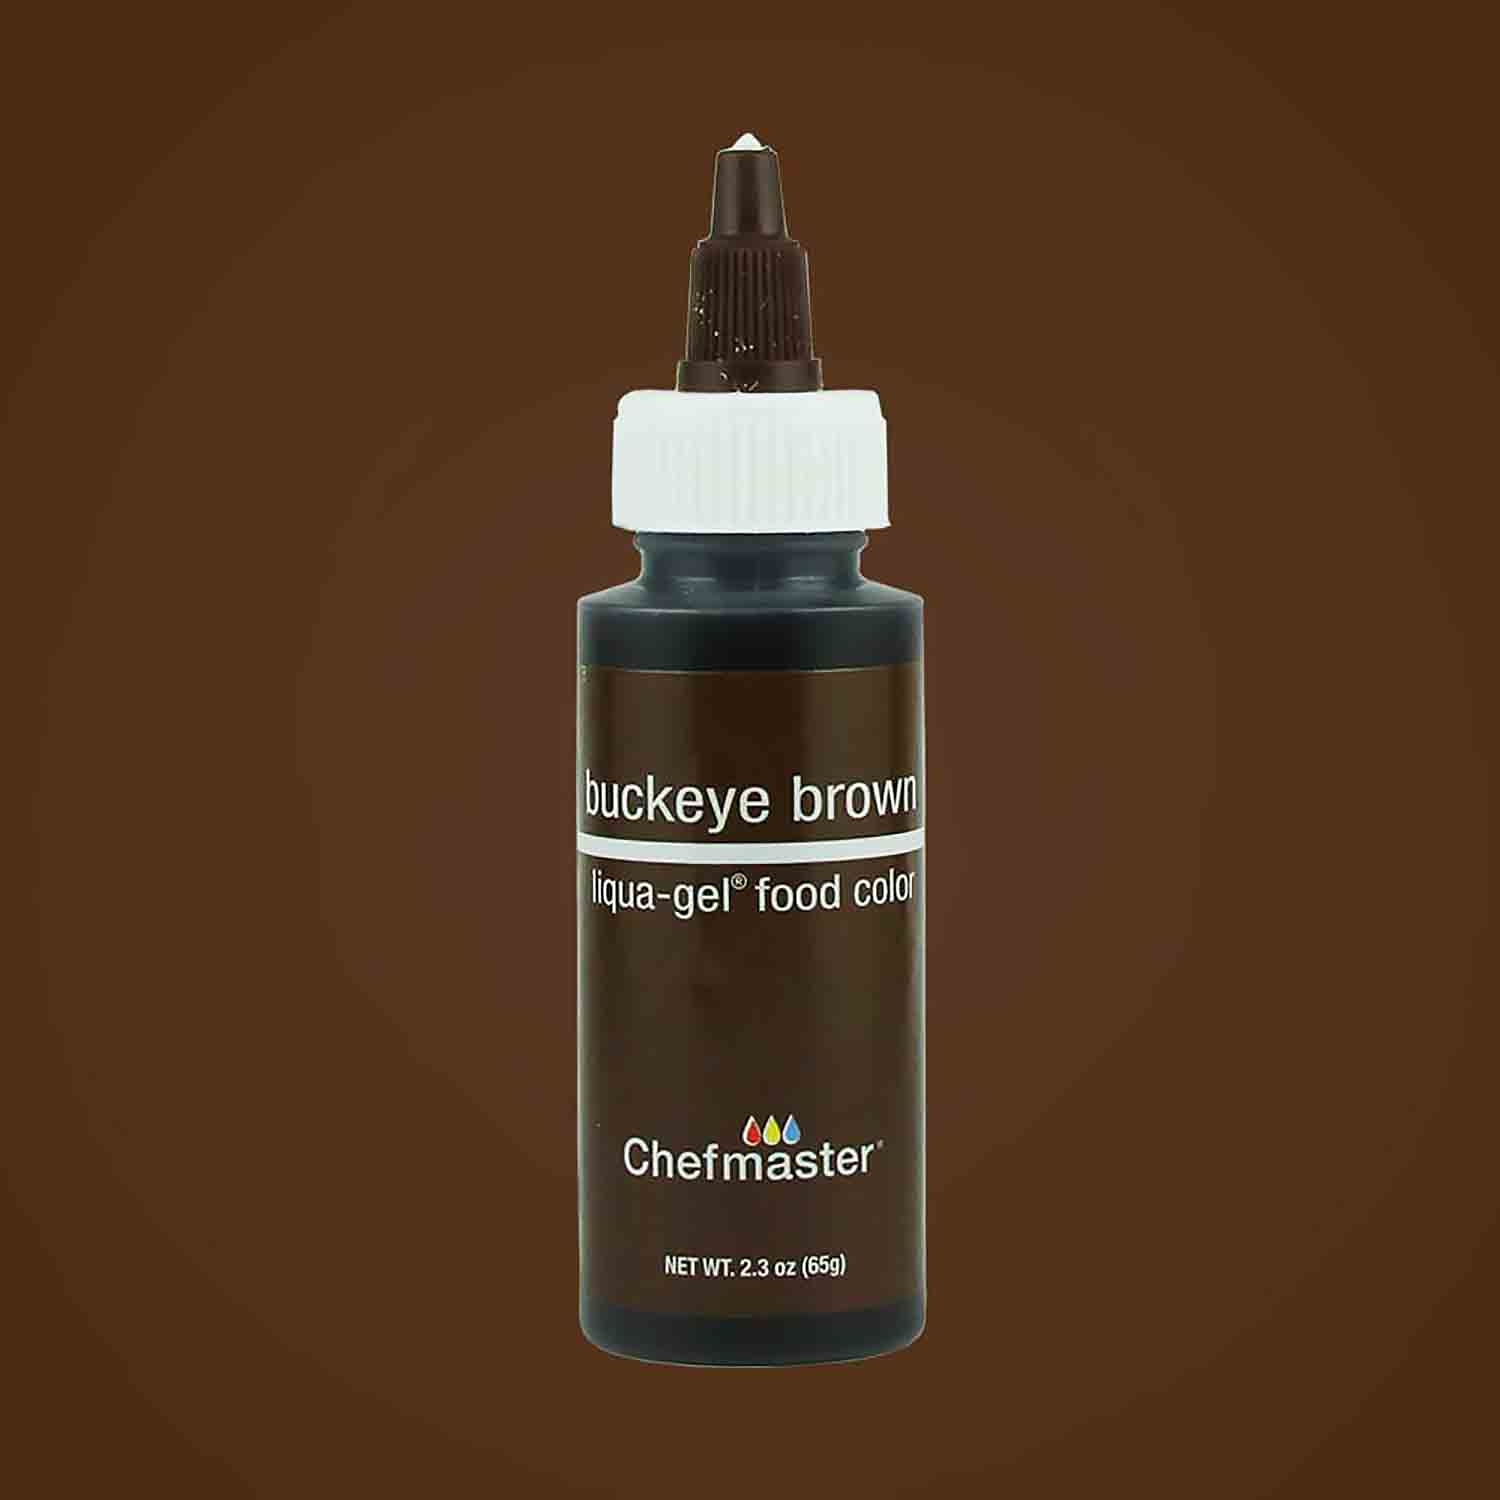 Buckeye Brown Chefmaster® Liqua-gel® Food Color